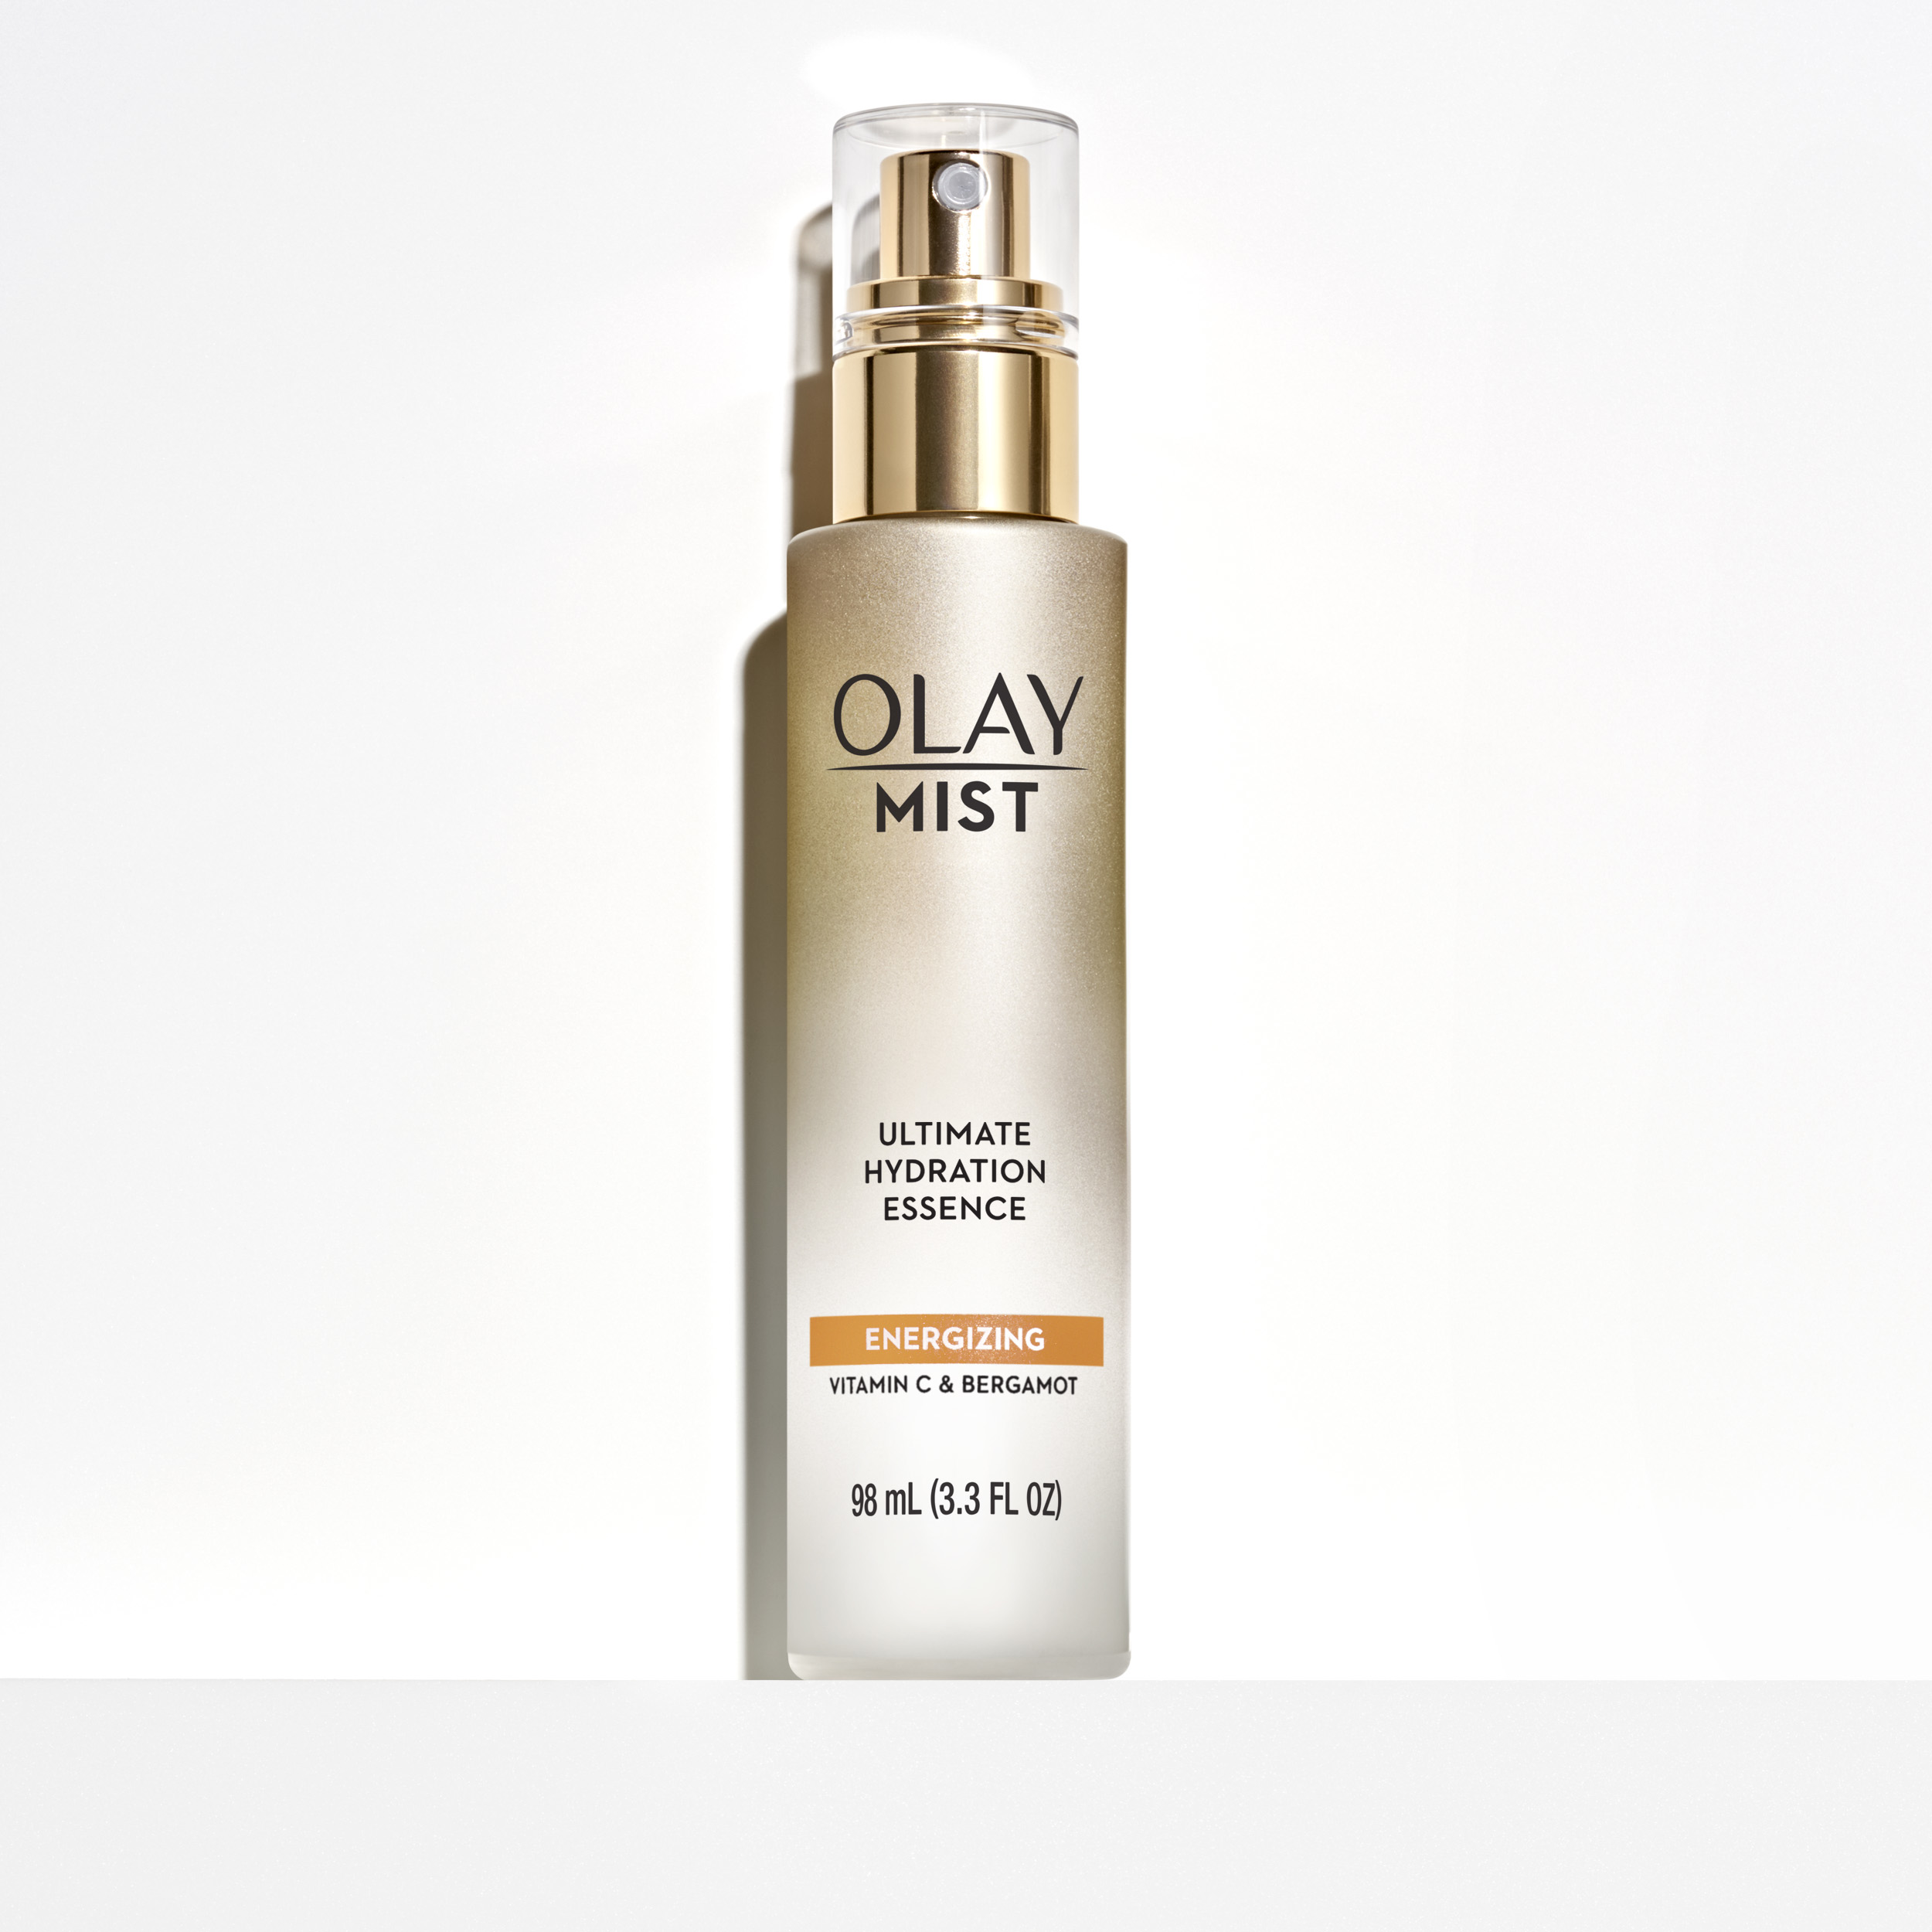 Olay Facial Mist - Energising Hydration Essence With Vitamin C & Bergamot 98 ml - SI1